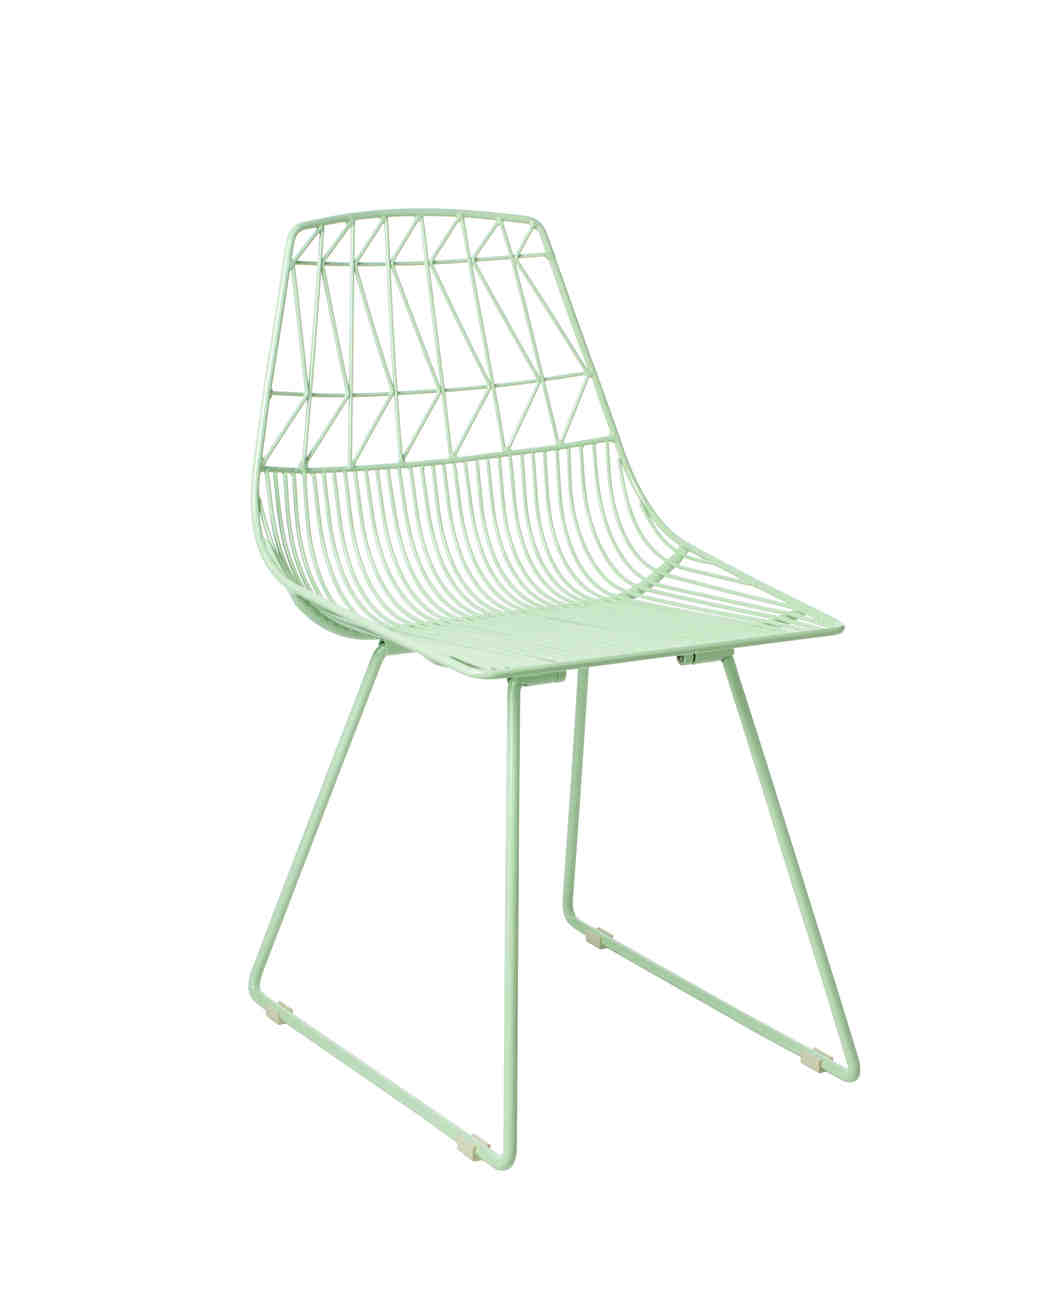 oudoor-registry-items-fab-lucy-chair-0814.jpg